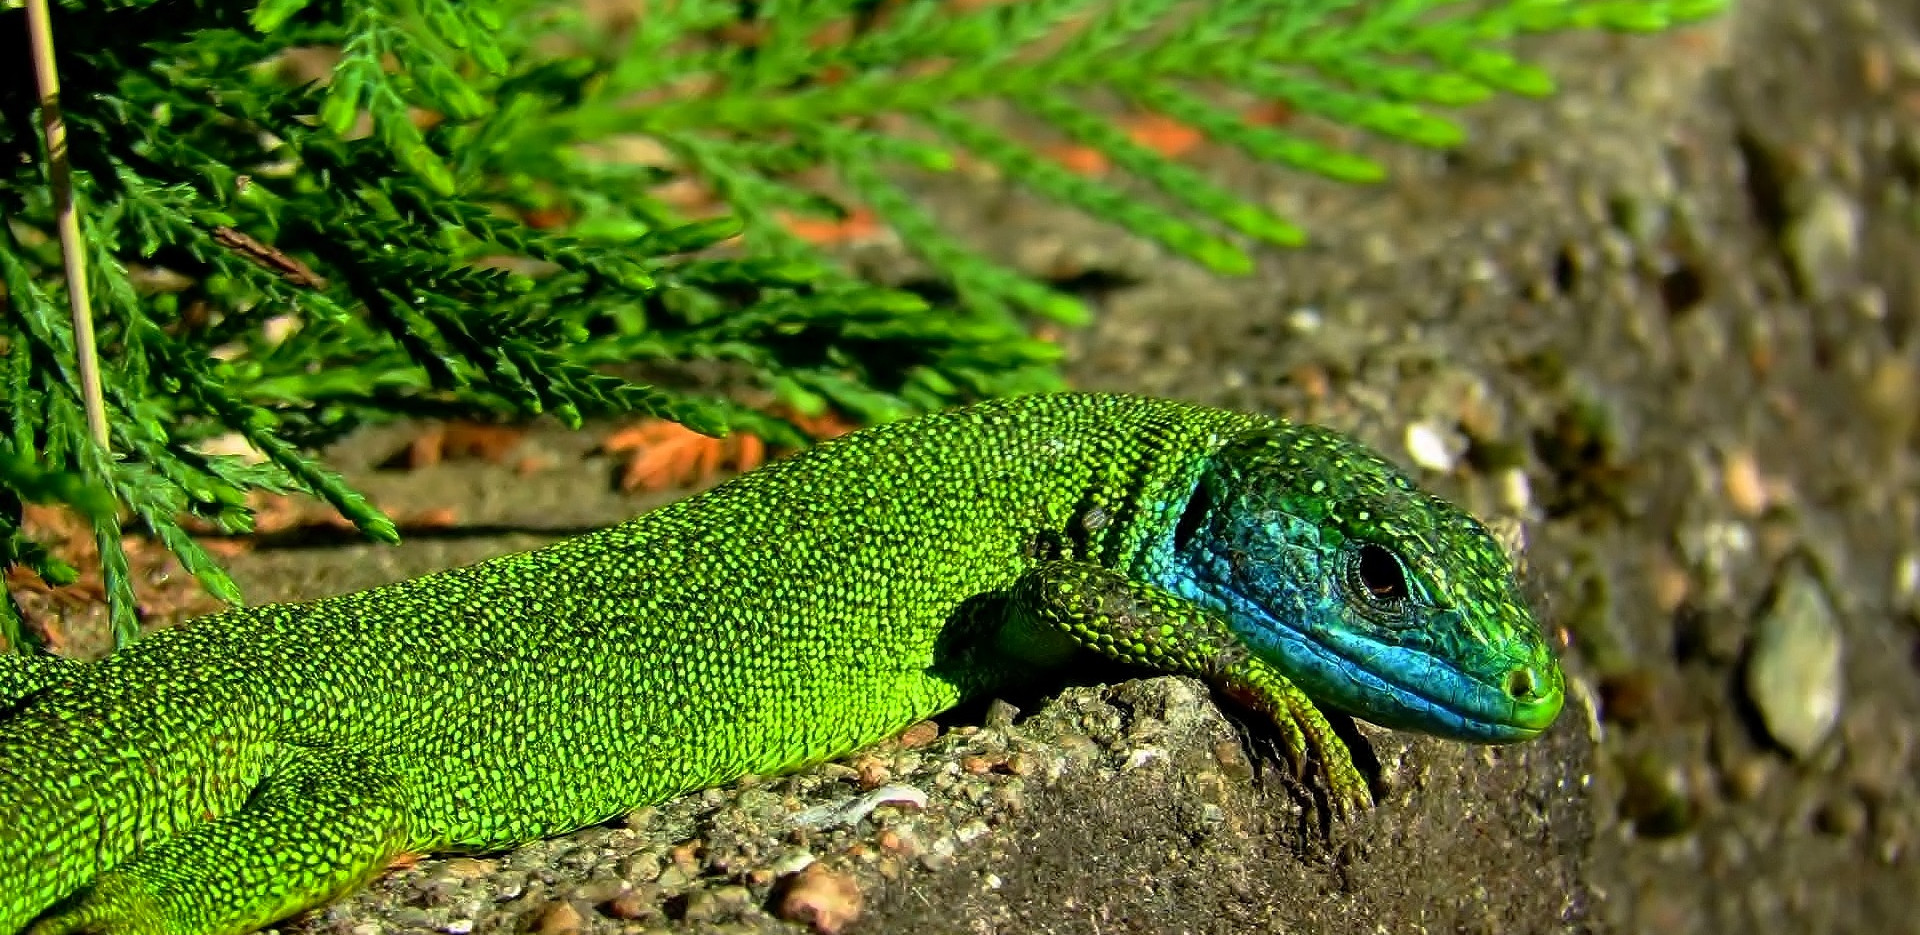 Western green lizard (lacerta bilineata), adult male, with blue facial colors typical for mating season, Malcantone, Ticino, May 2020.jpg